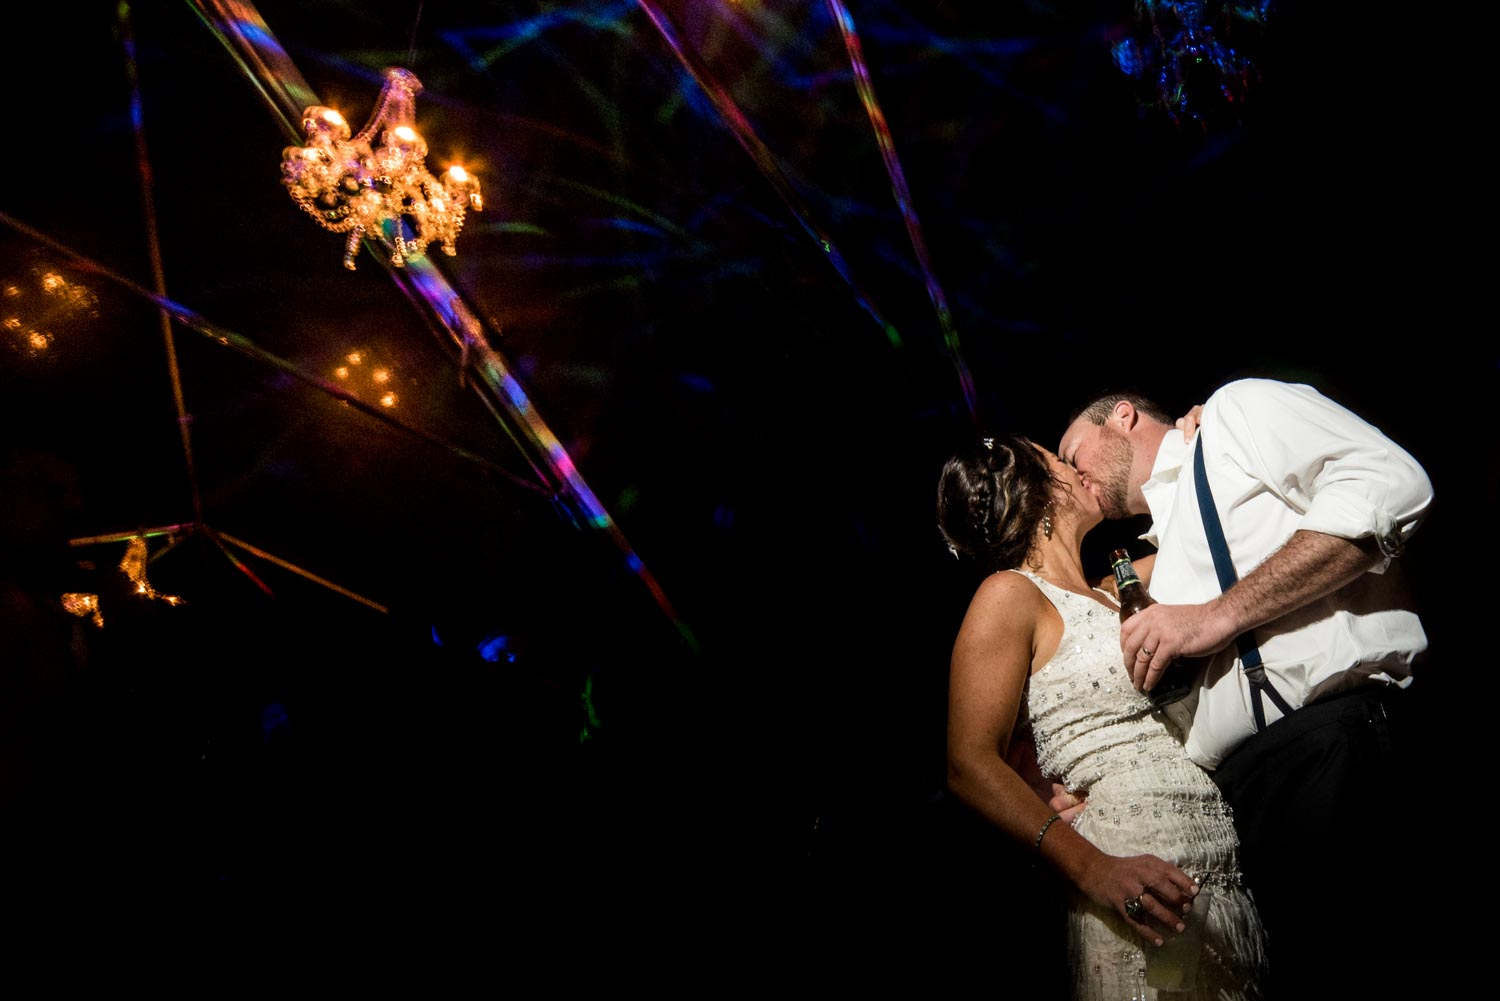 Bride and groom kissing in the dark reception area under a crystal chandelier.